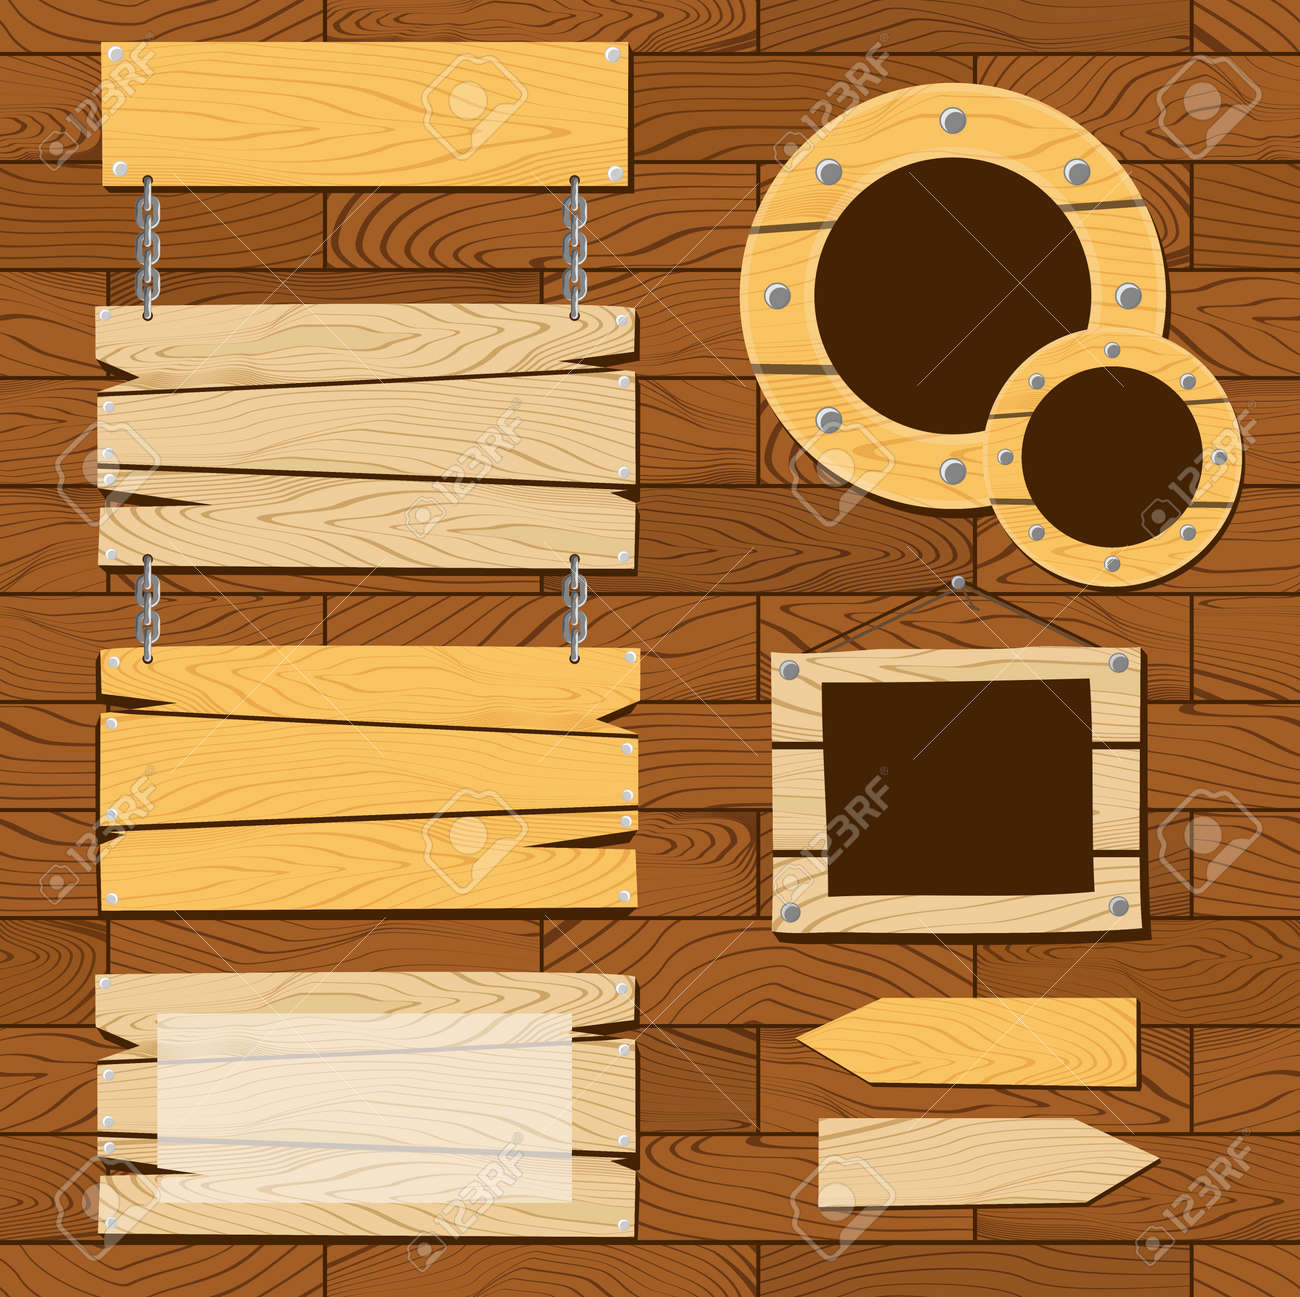 Wood frames set free vector - Set Of Signboards And Wooden Frames On On Seamless Flooring Pattern Useful For Scrapbooking Projects